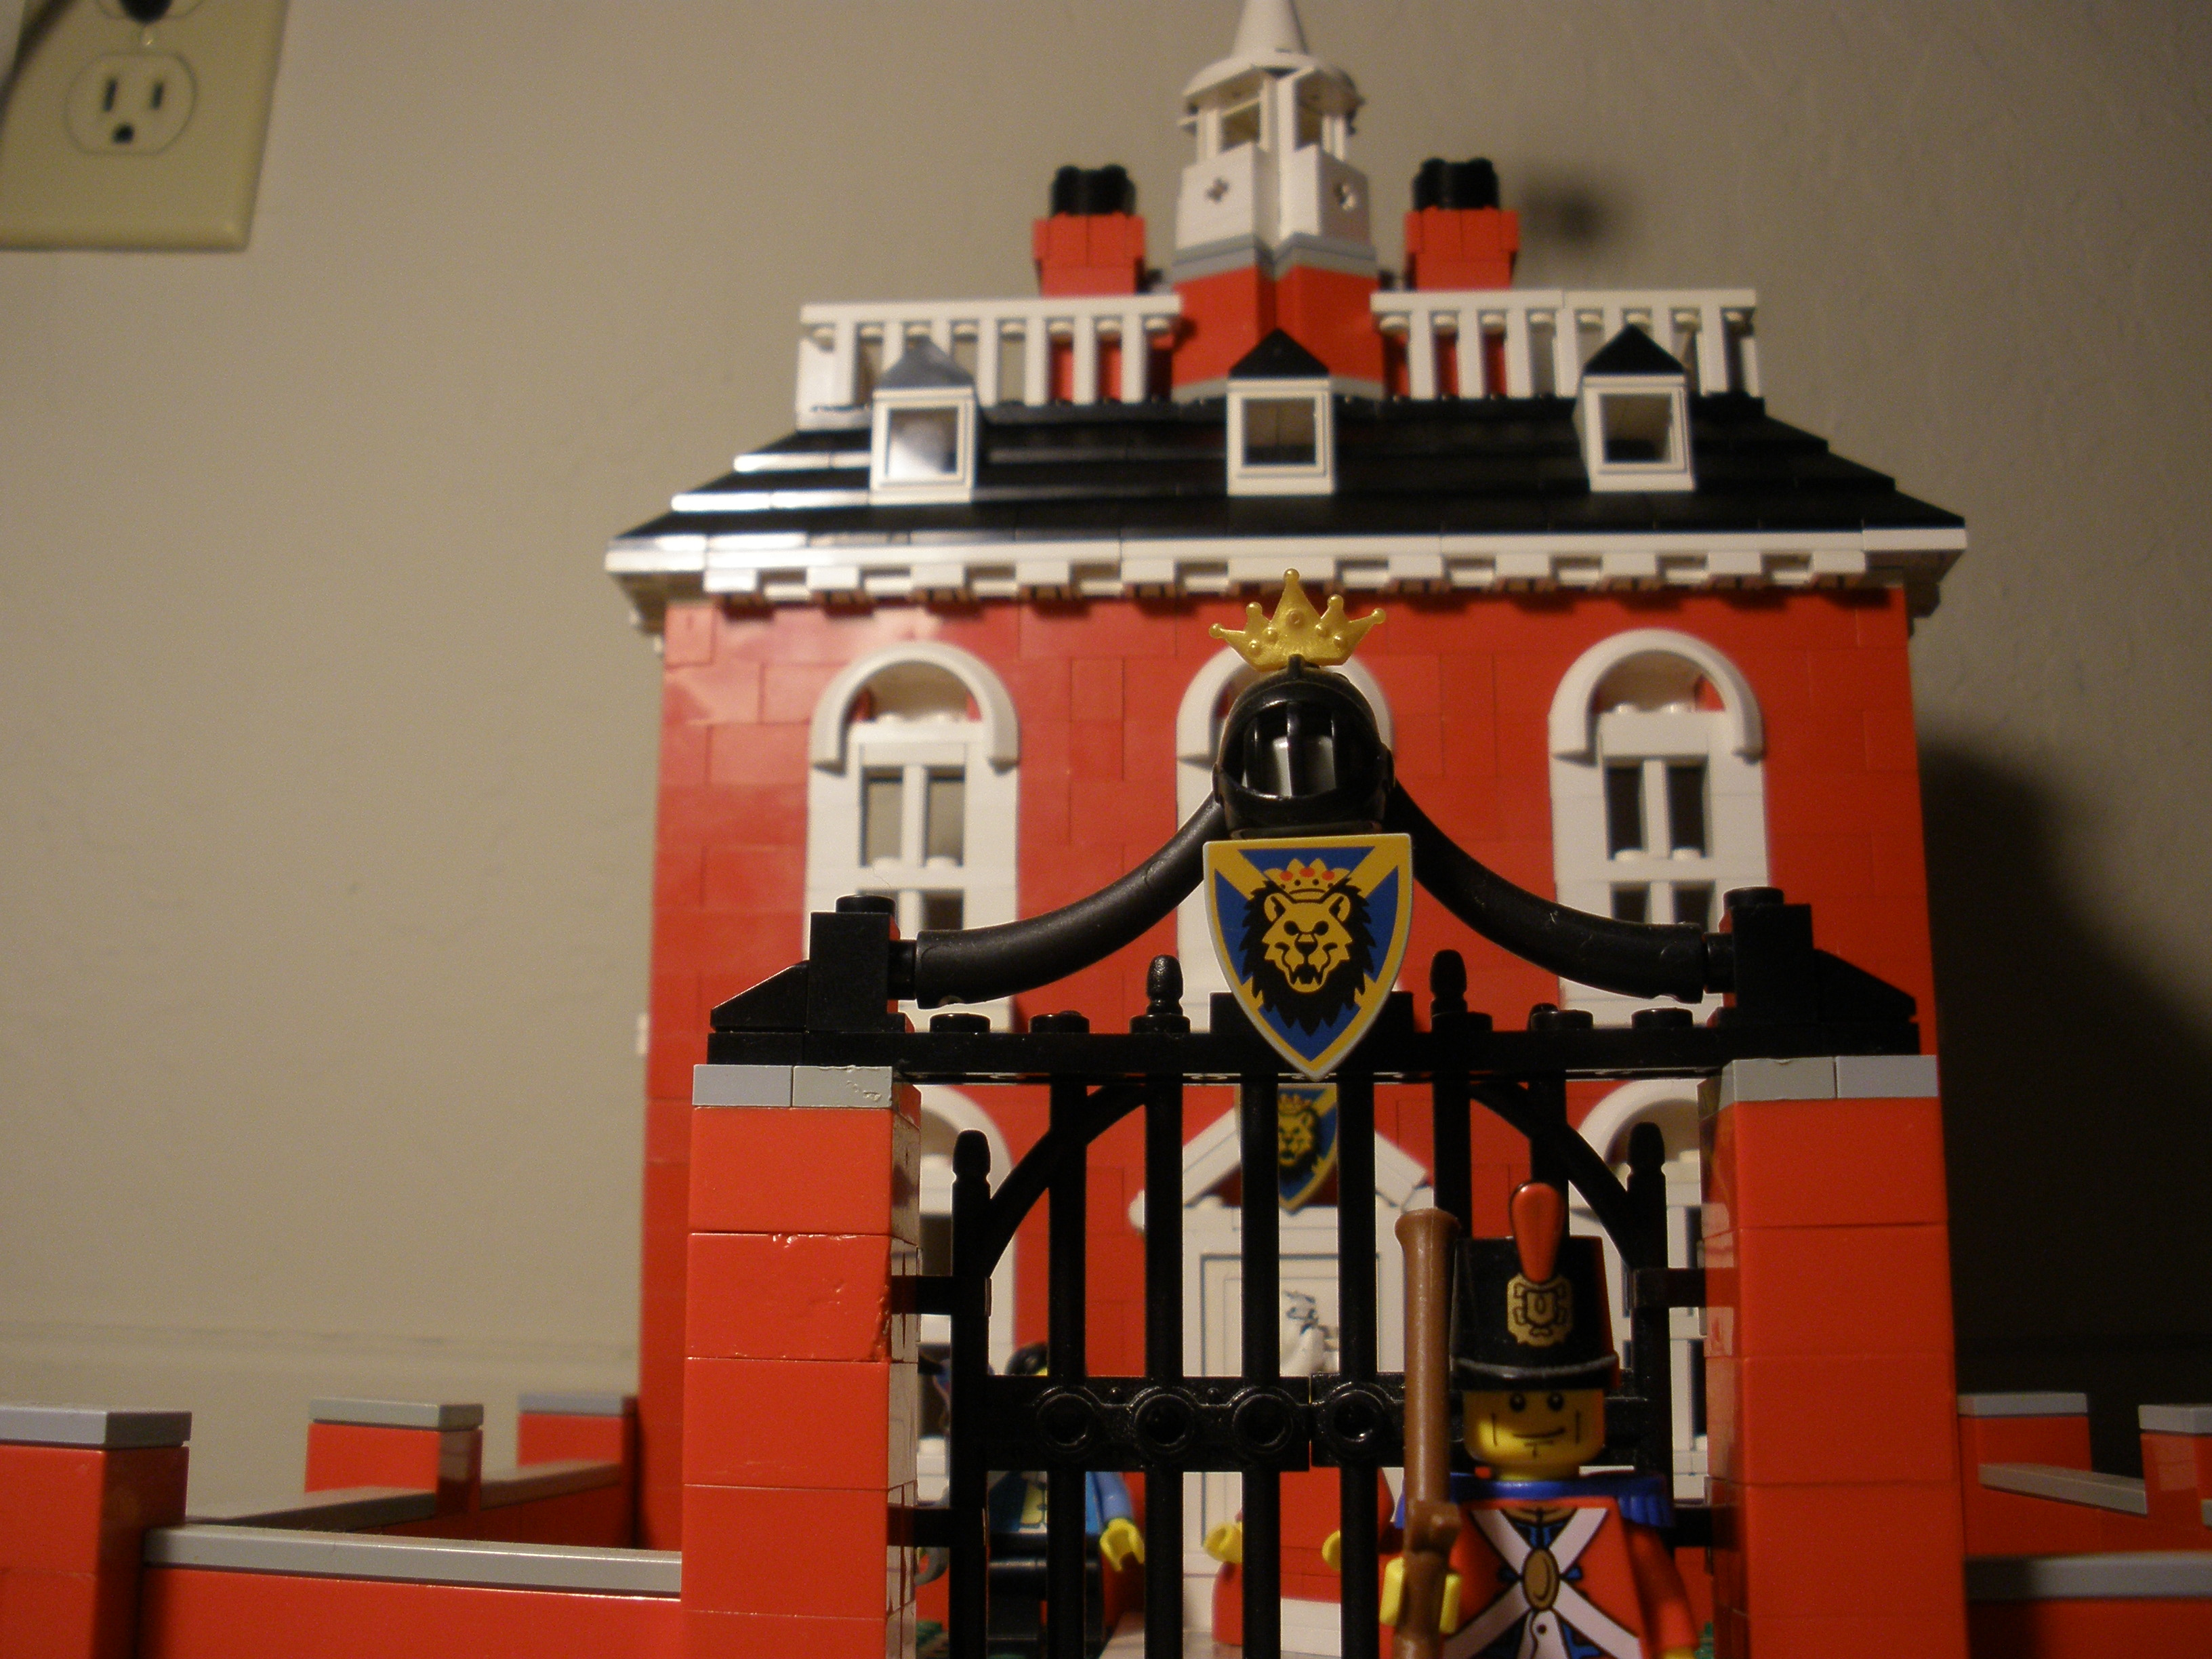 lego_picts_004.jpg